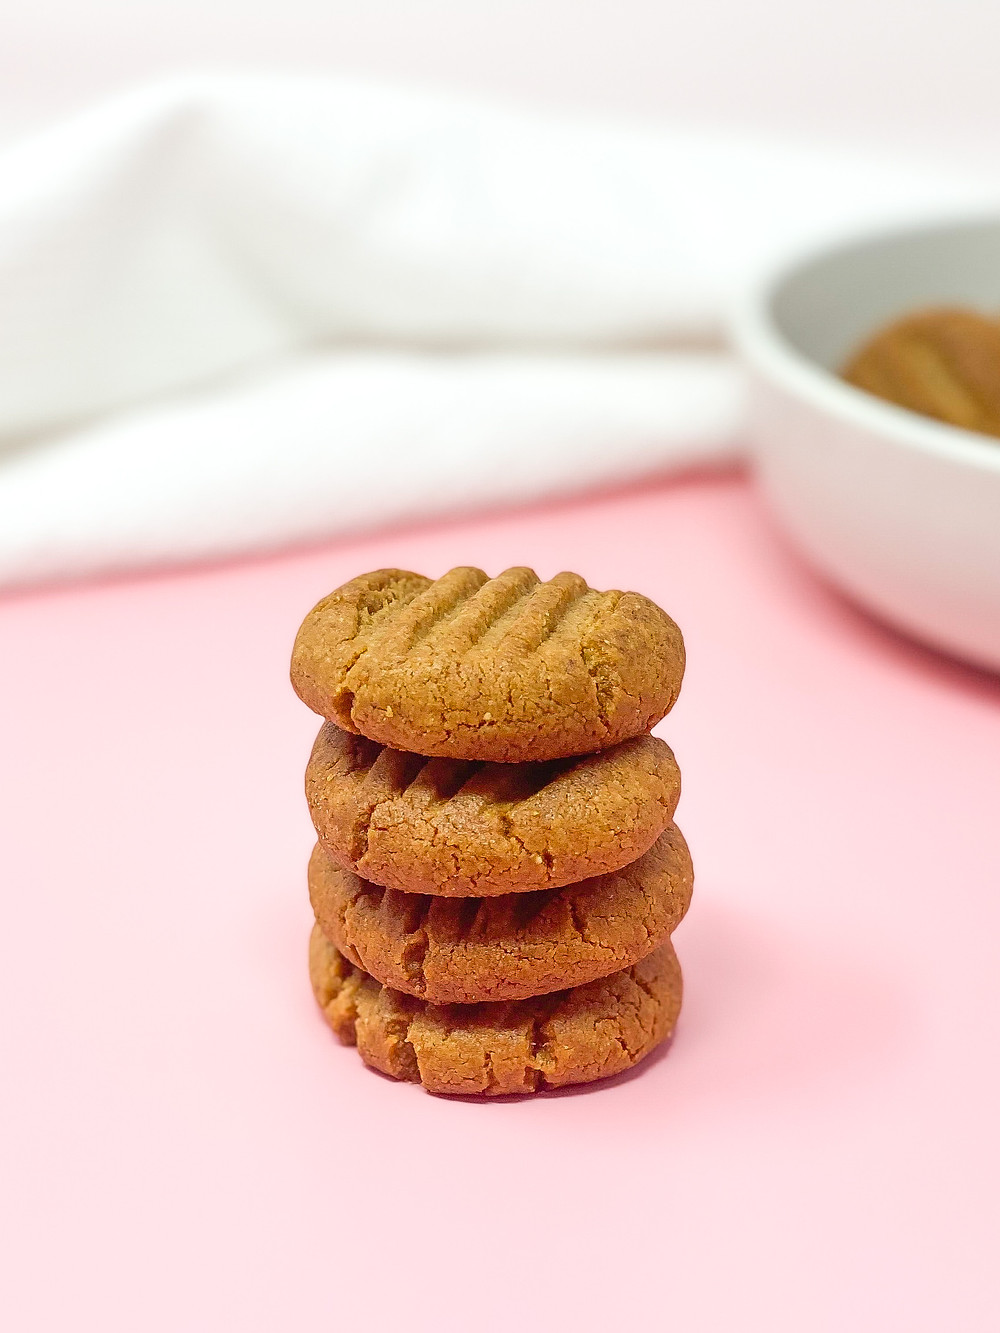 3 INGREDIENTS PEANUT BUTTER COOKIES 🍪 STACK ON EACH OTHER